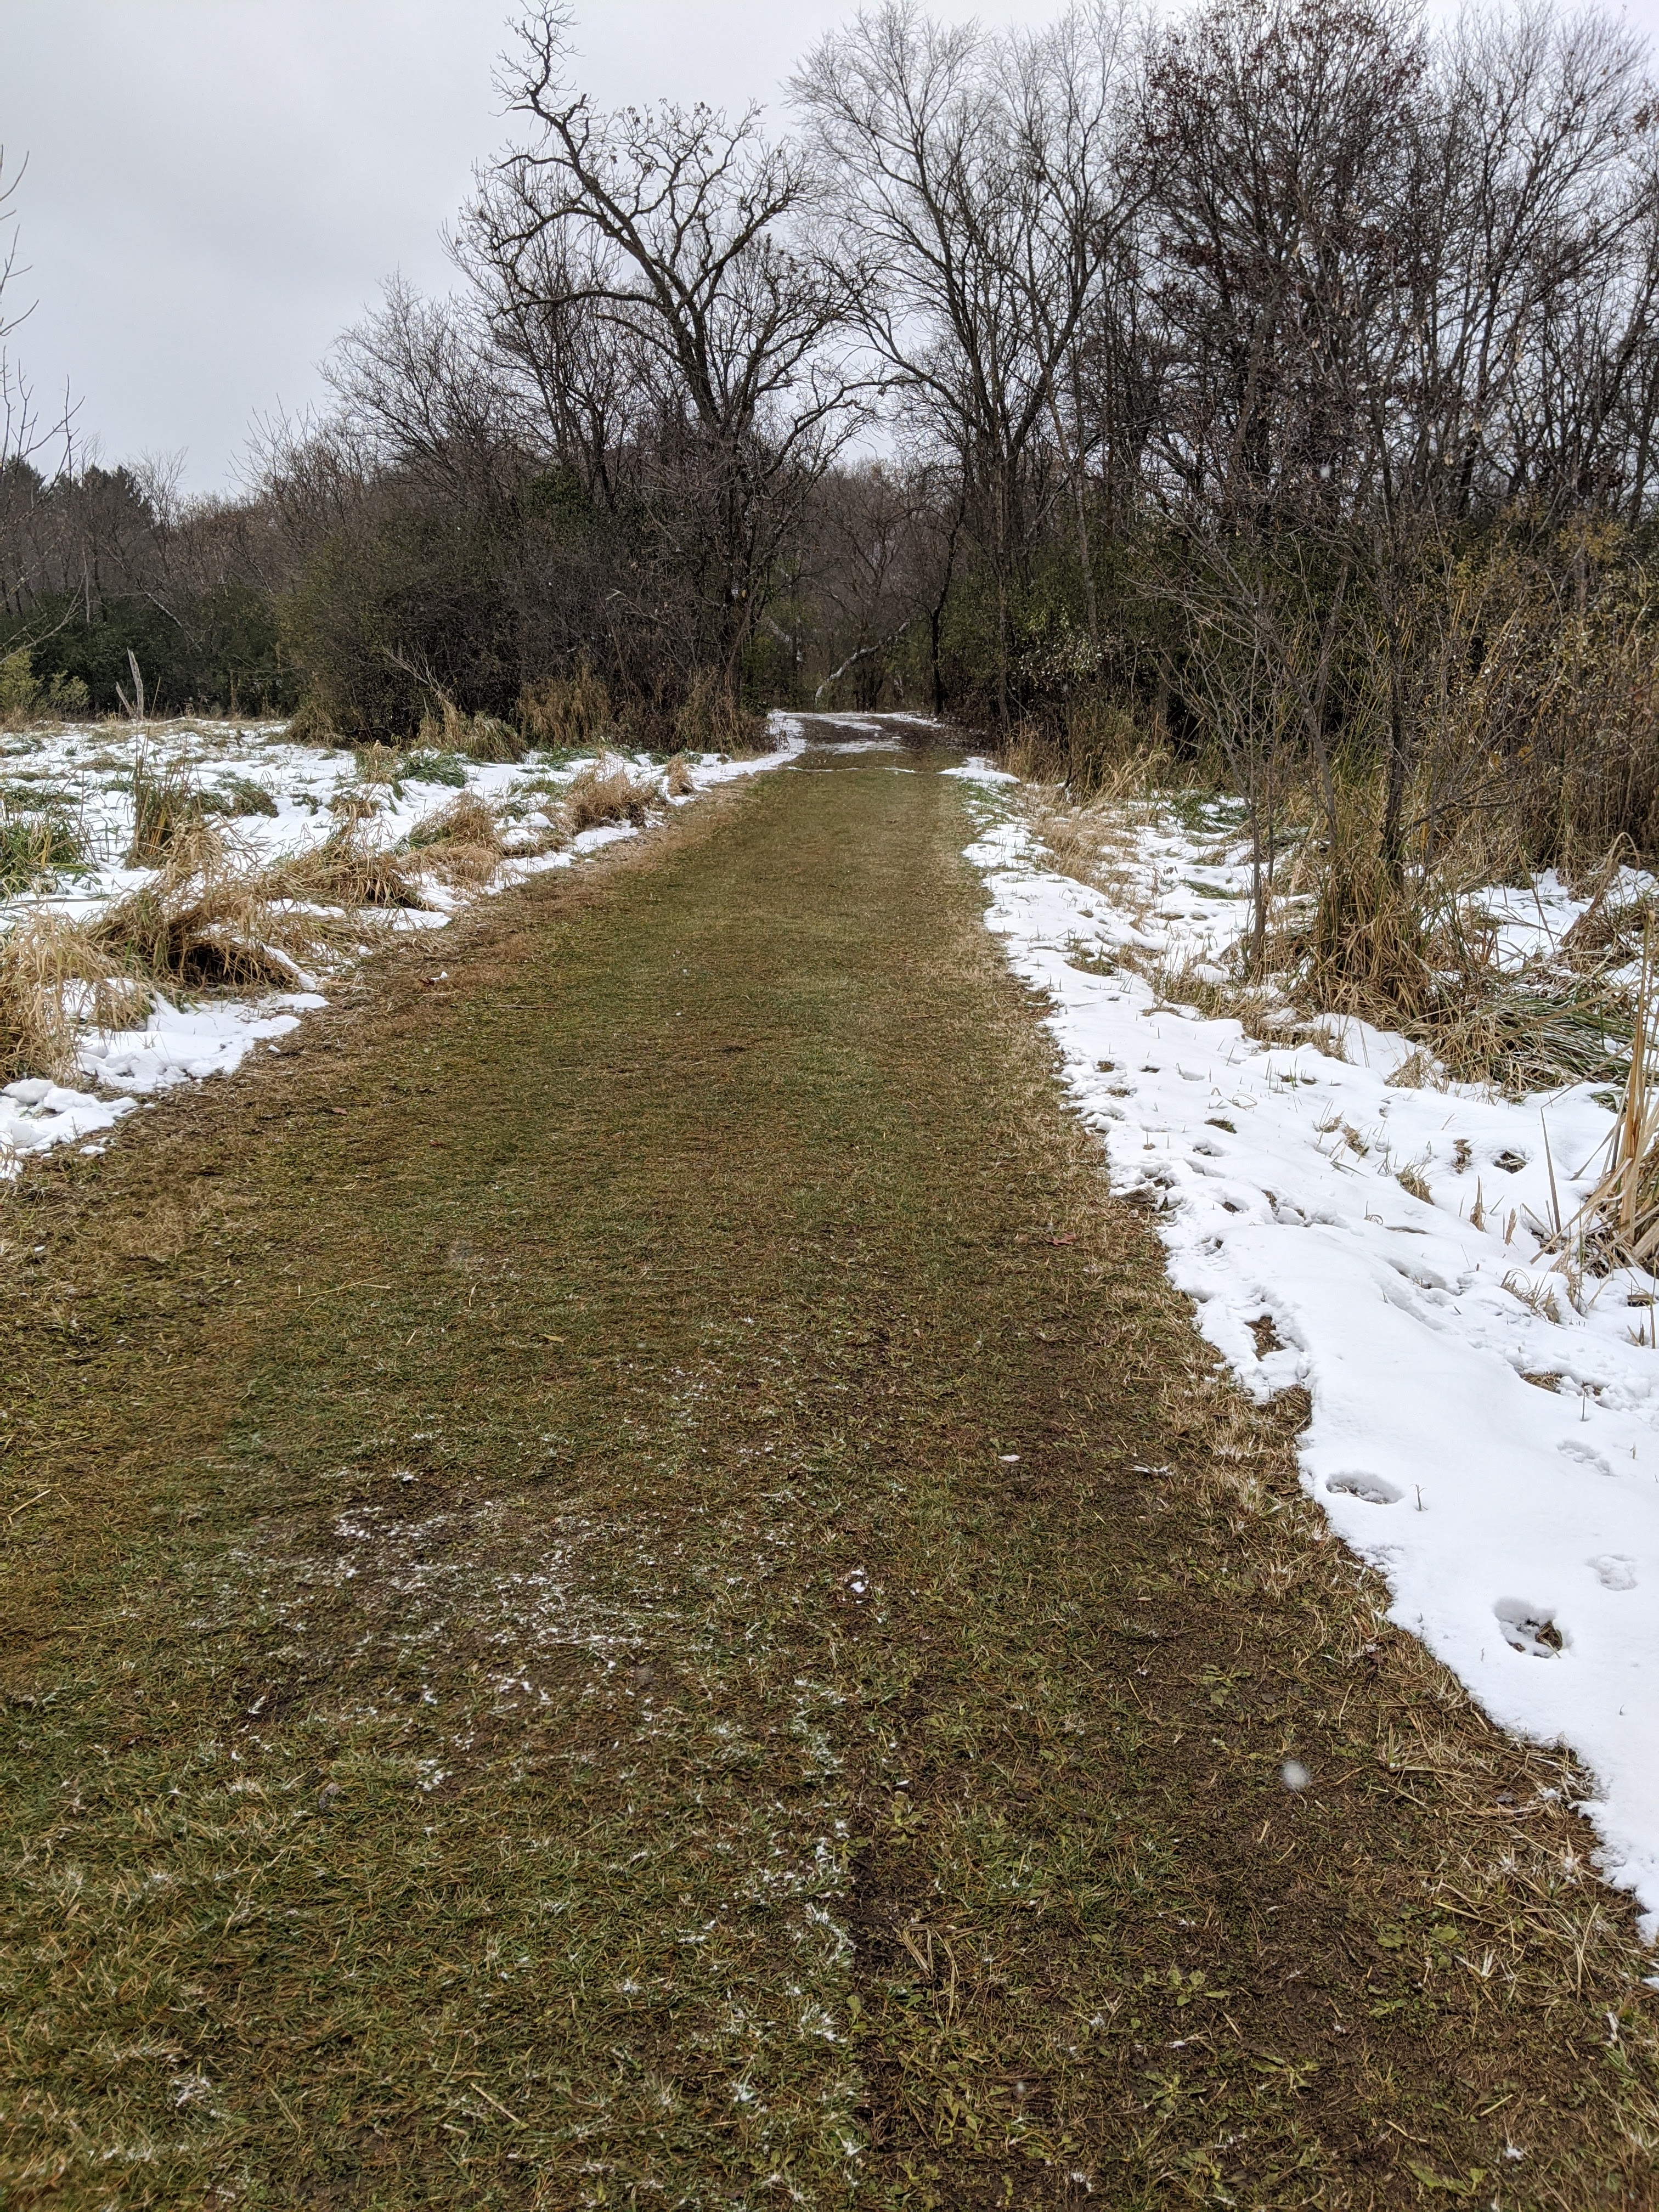 These trails are for cross country skis in the winter.